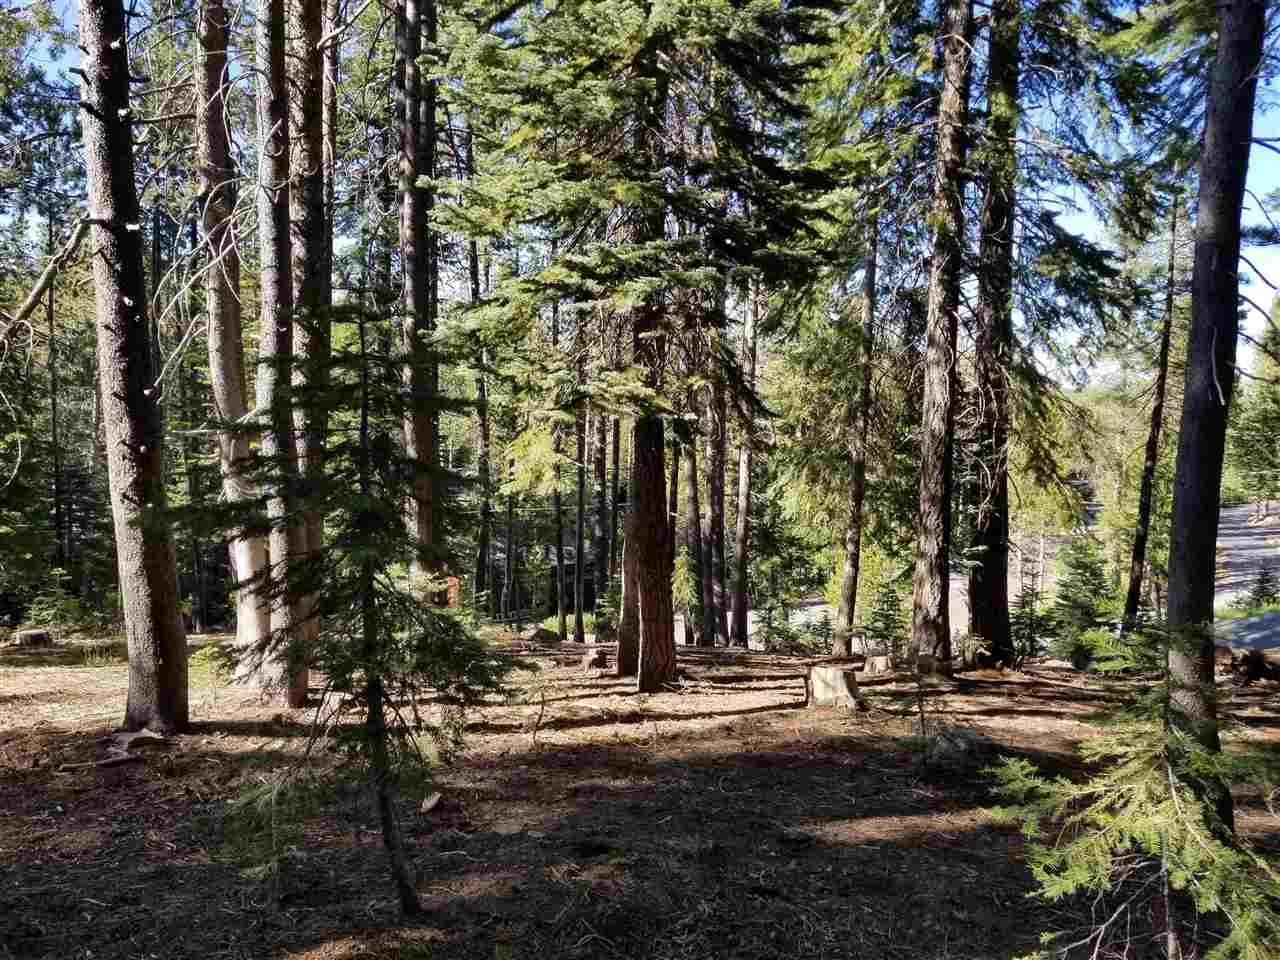 Image for 14167 Swiss Lane, Truckee, CA 96161-7130